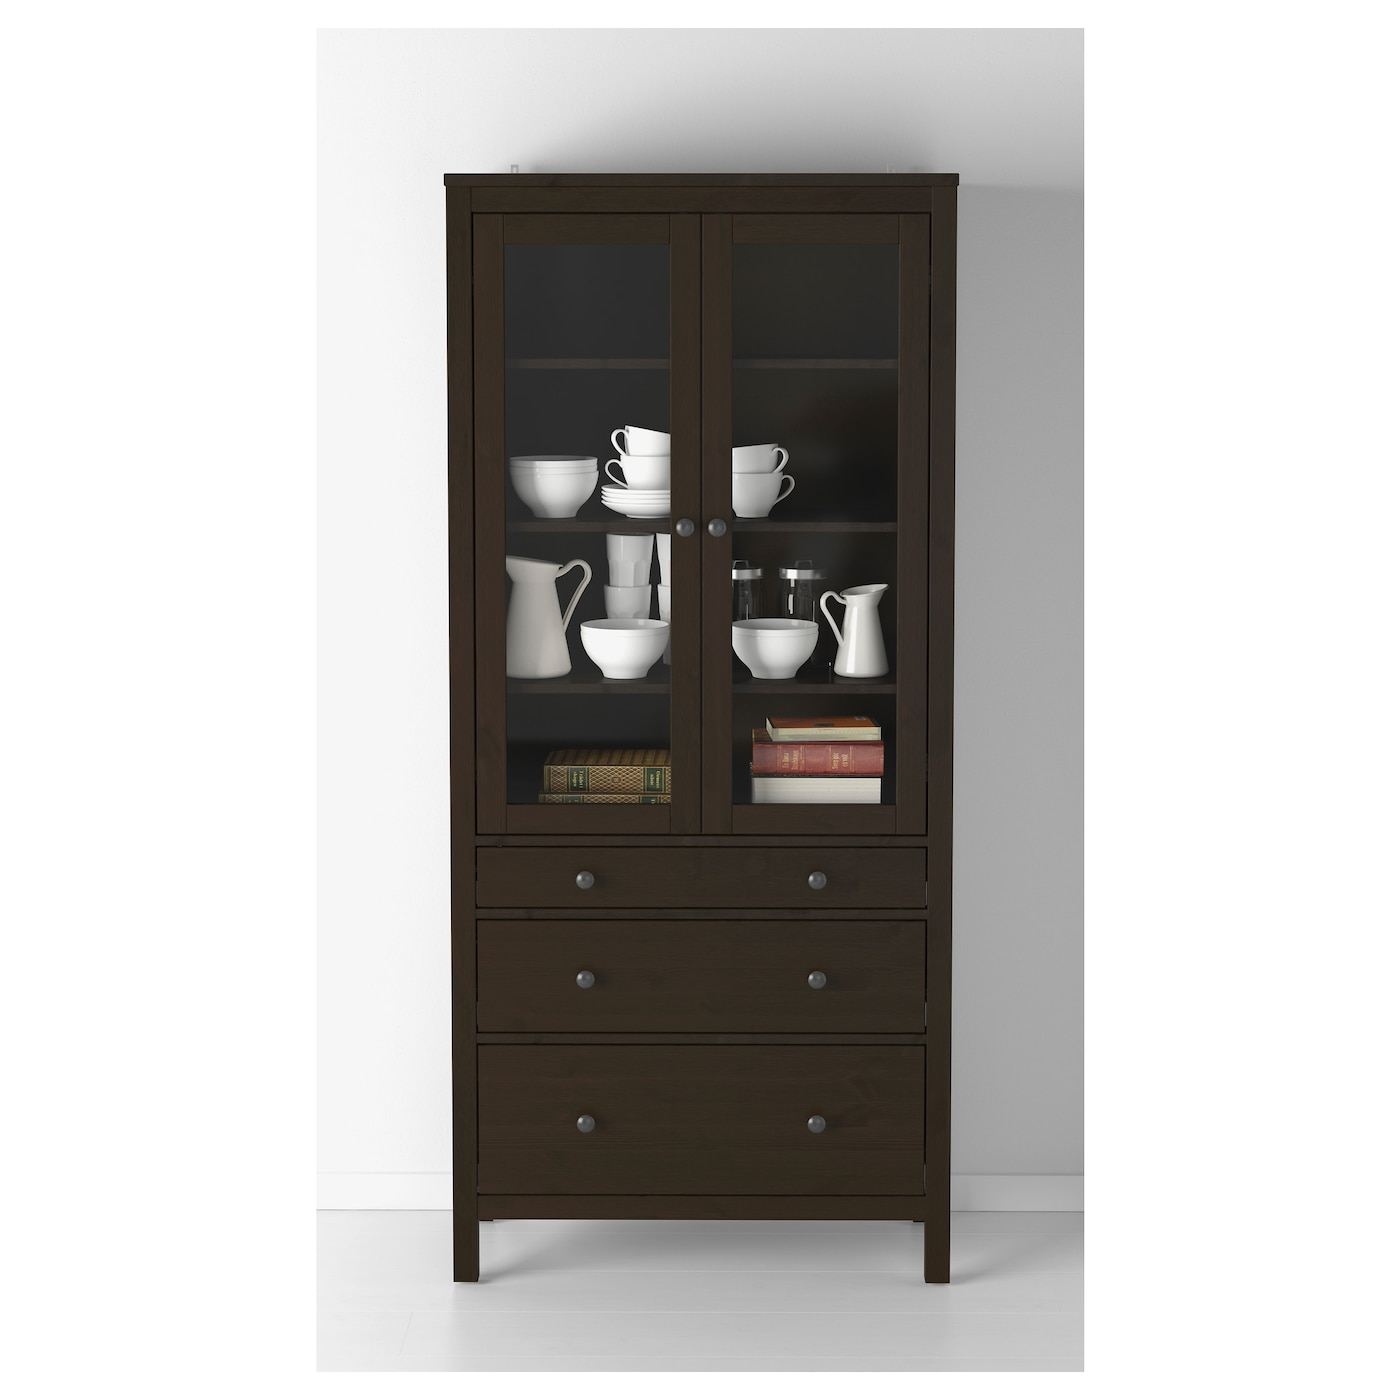 IKEA HEMNES glass-door cabinet with 3 drawers Solid wood has a natural feel.